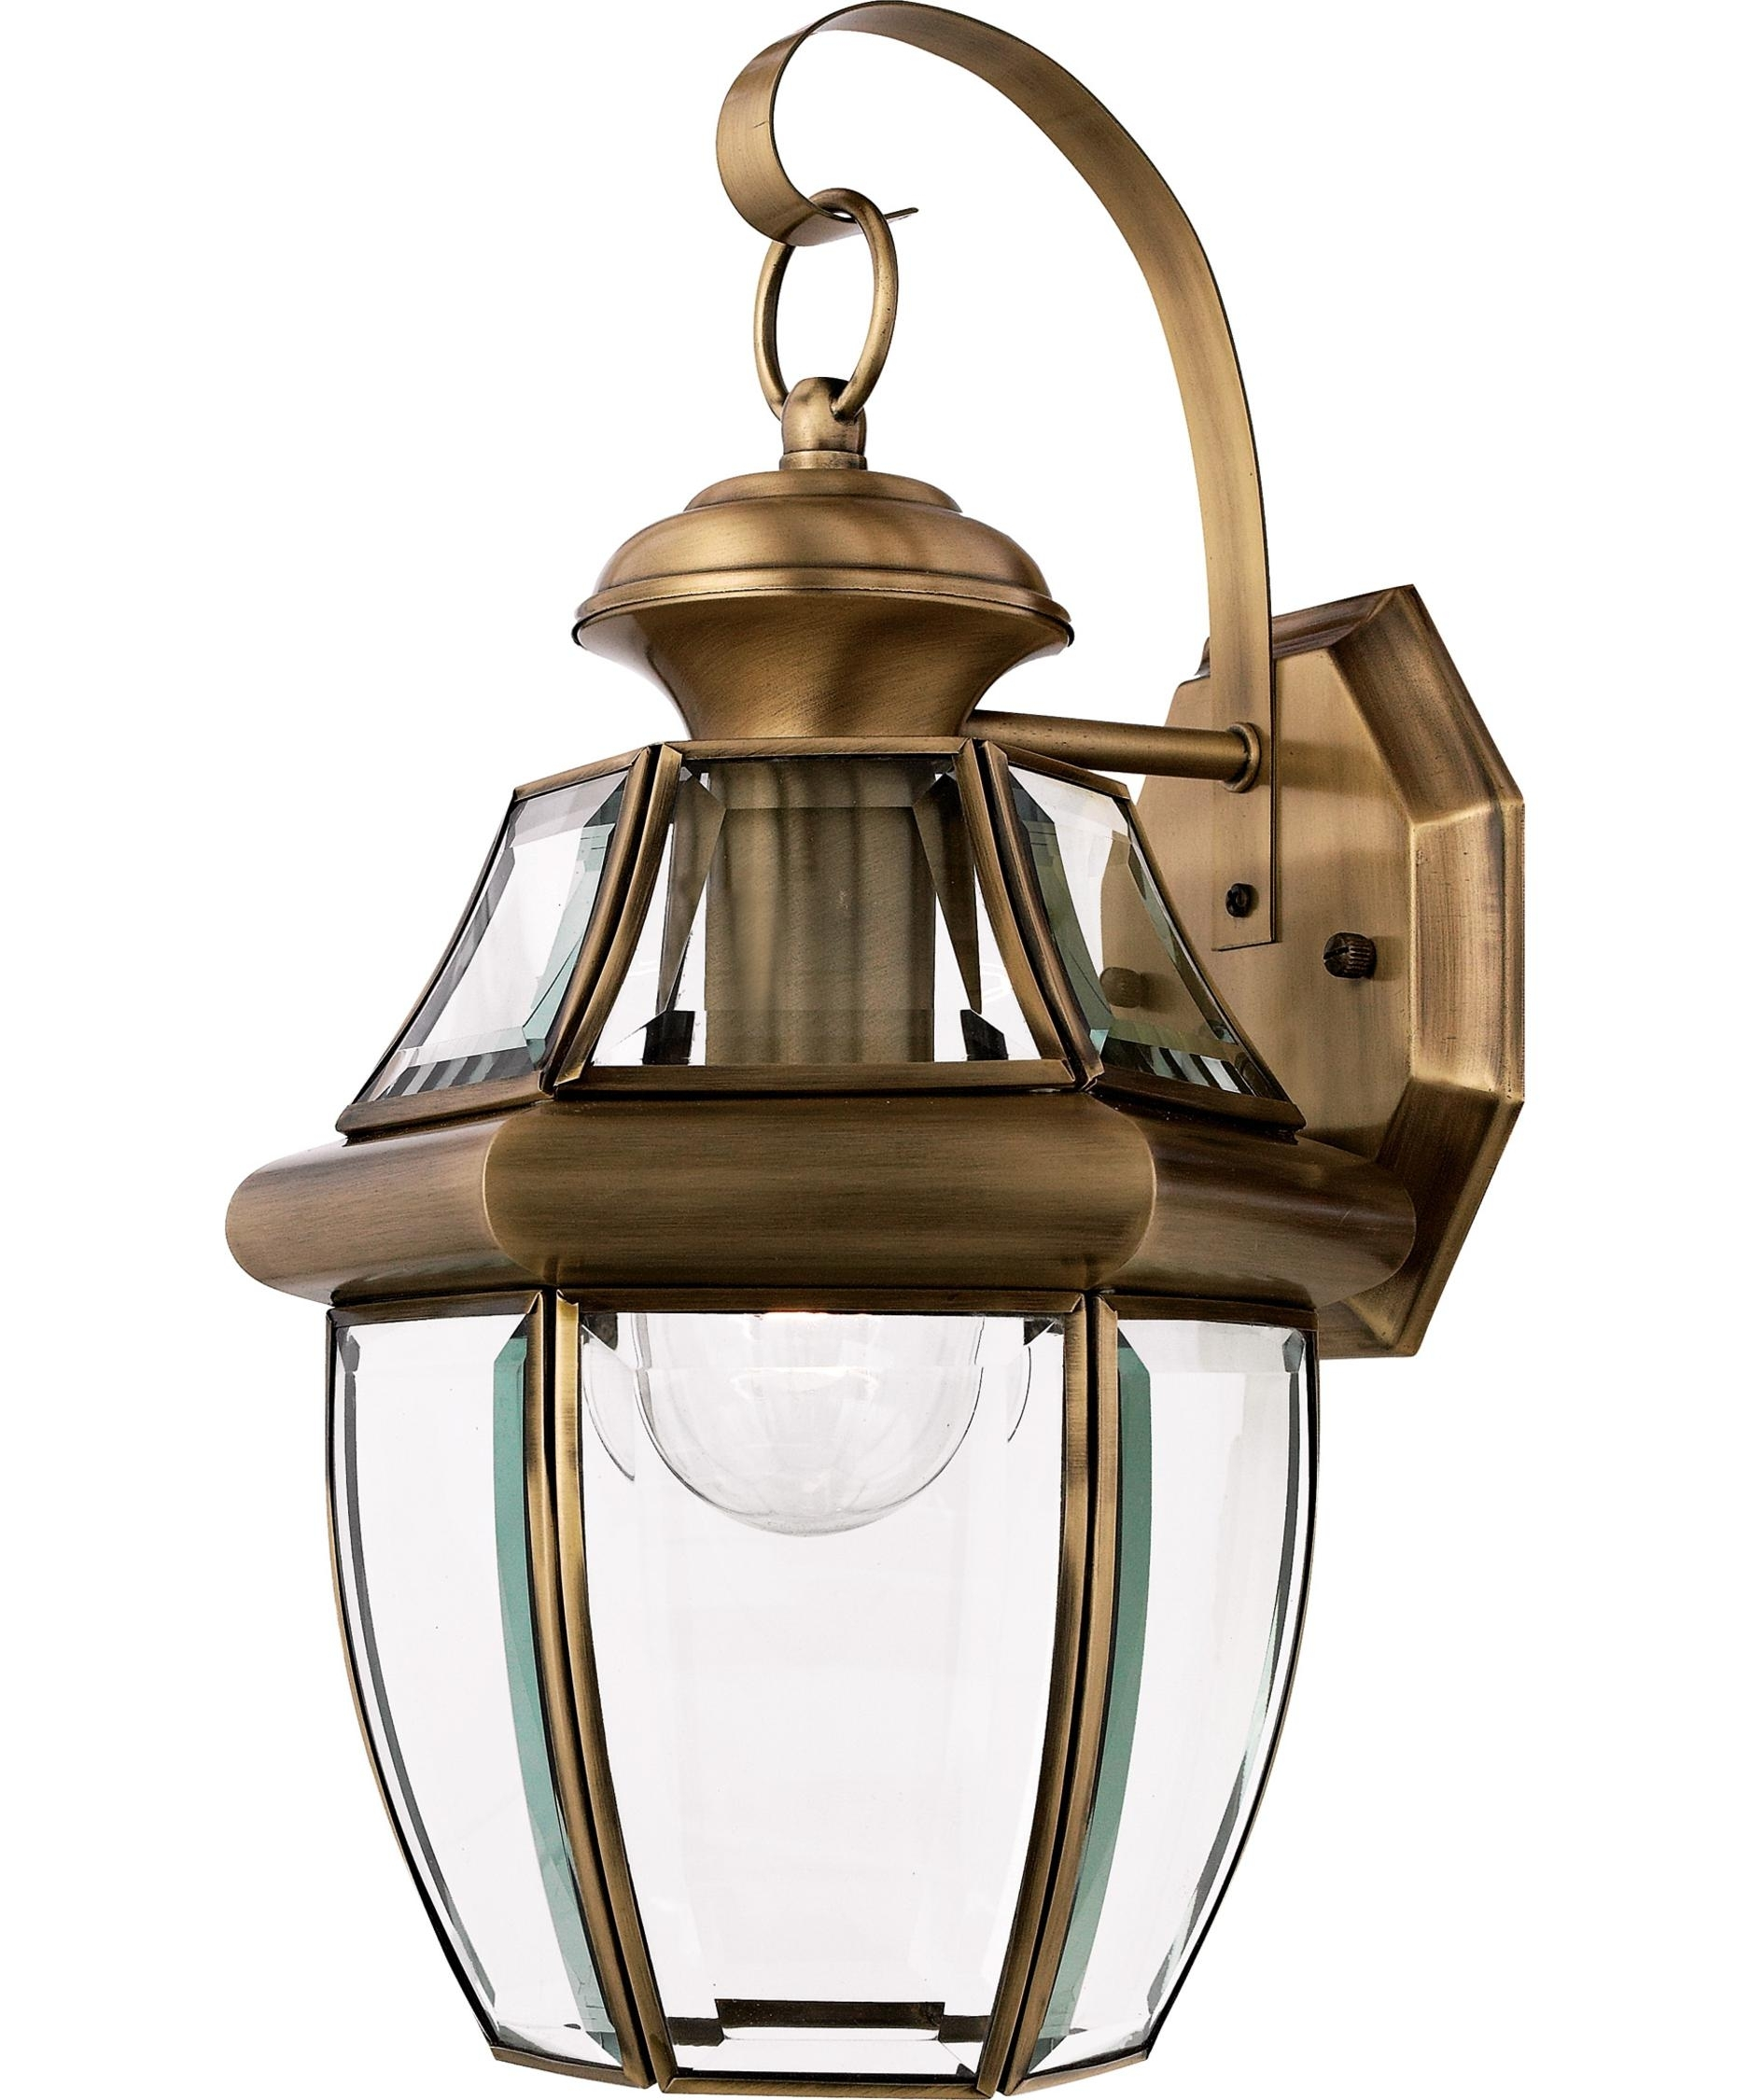 Inspiration about Quoizel Ny8316 Newbury 9 Inch Wide 1 Light Outdoor Wall Light In Antique Brass Outdoor Lighting (#5 of 15)